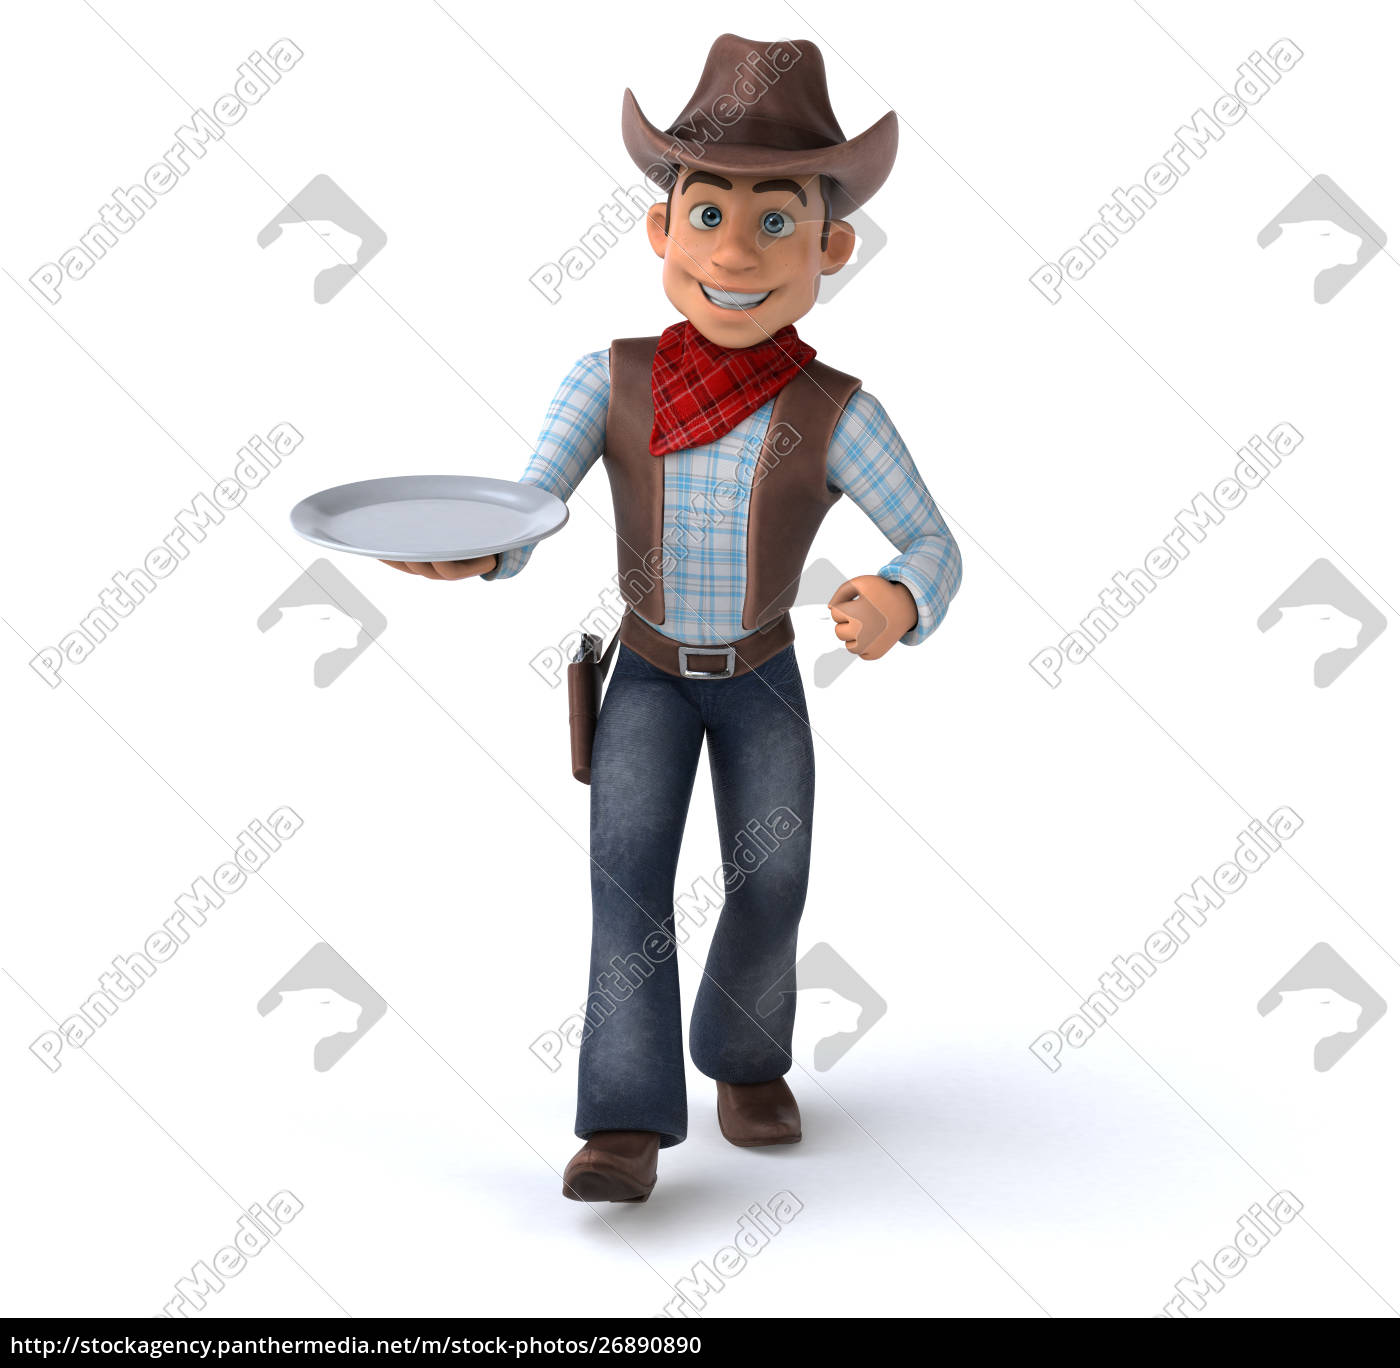 spaß, cowboy, -, 3d-illustration - 26890890